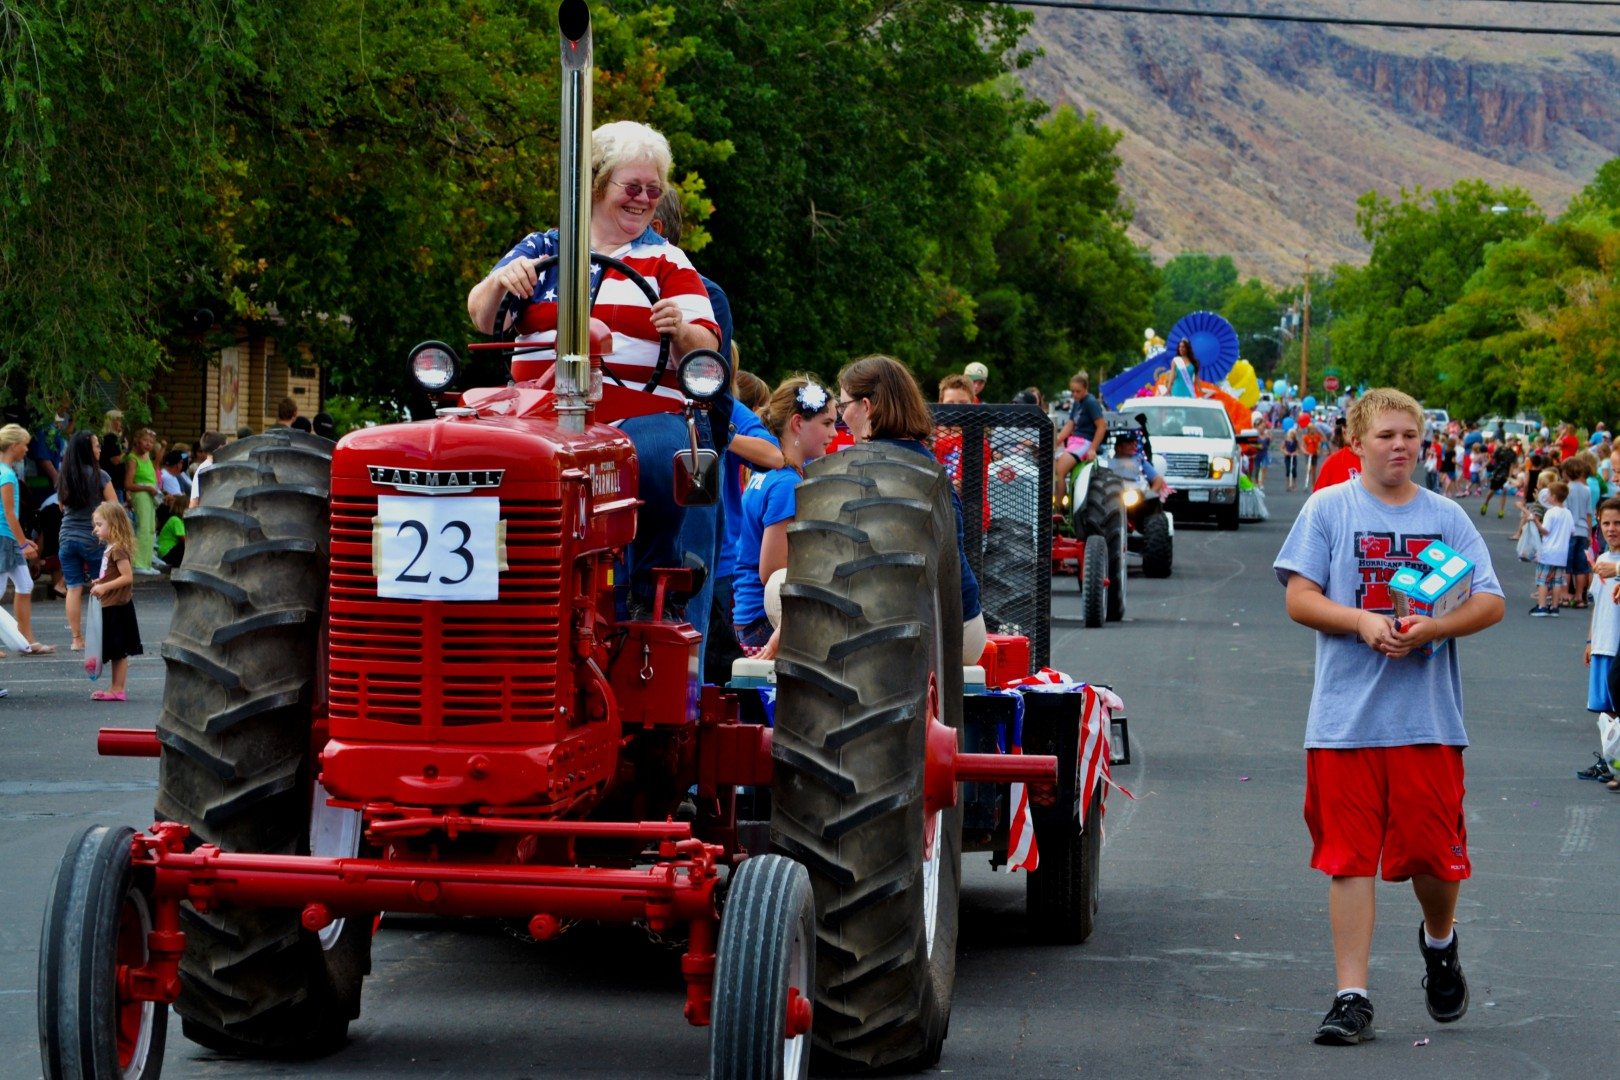 Peach Days Parade, Peach Days festival, Hurricane, Utah, Aug. 30-31, 2013 | Photo by Jeremy Crawford, St. George News